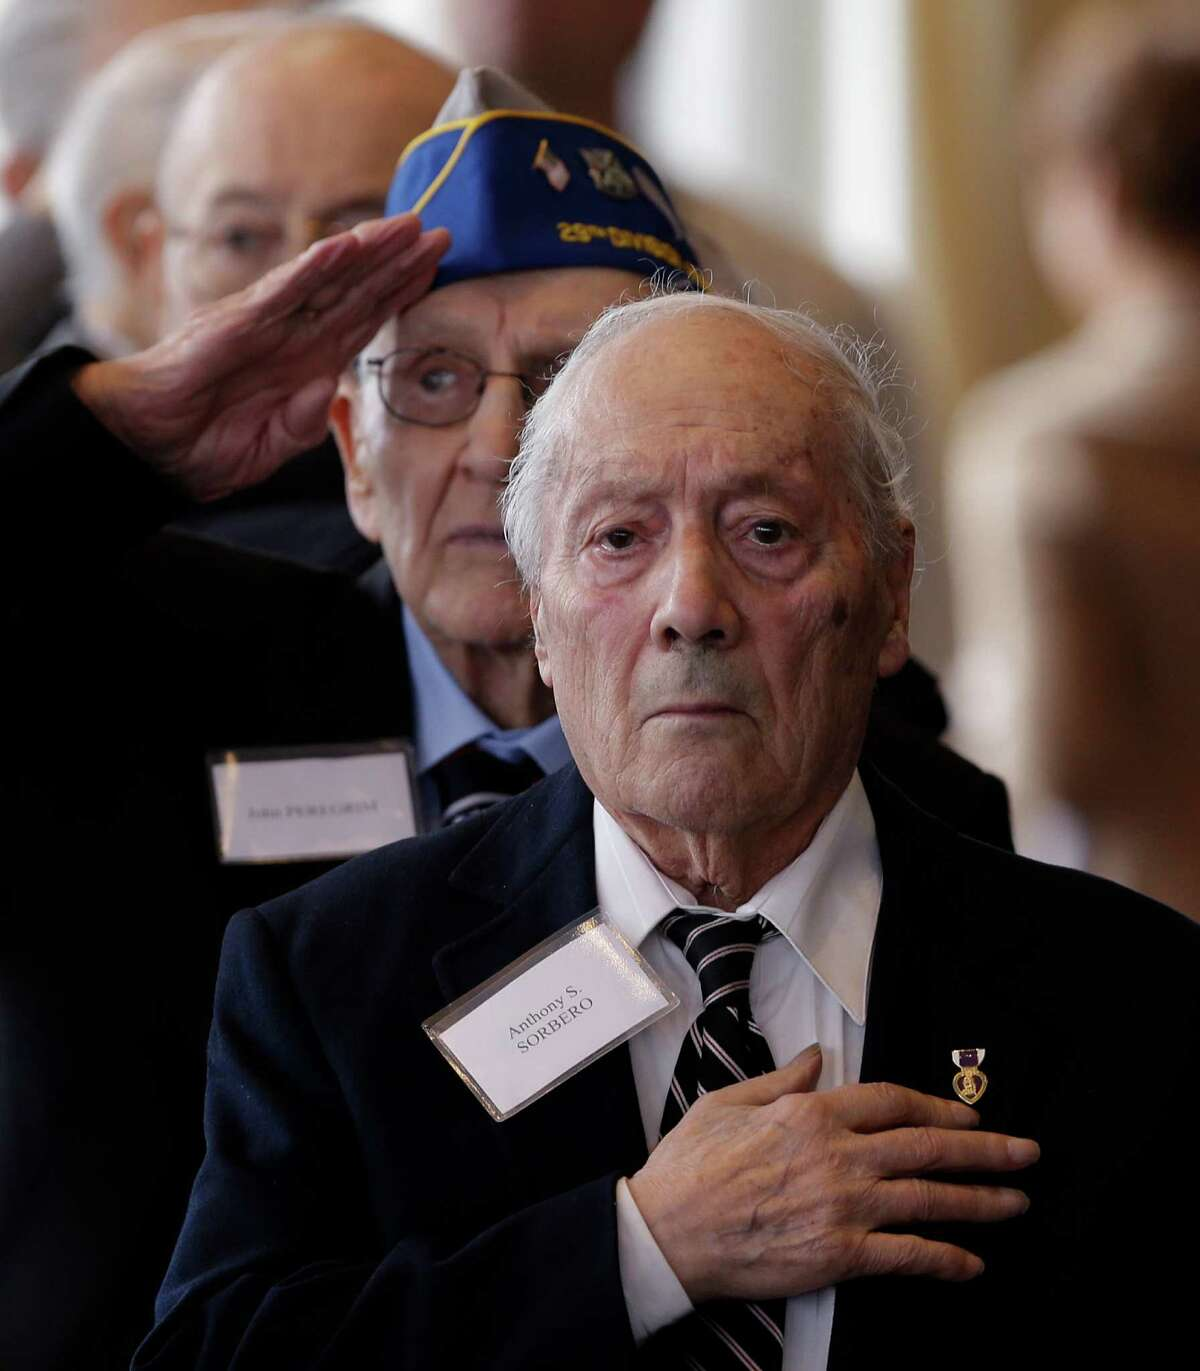 World War II veterans Anthony Sorbero of Amsterdam, N.Y., front, and John Peregrim of Devon, Conn., stand for the national anthems of France and the United States before being presented with the insignia of the French Legion of Honor during a ceremony at the U.S. Military Academy on Friday, May 9, 2014, in West Point, N.Y. Thirty-four U.S. veterans were honored 70 years after of the D-Day landings. (AP Photo/Mike Groll)1 ORG XMIT: NYMG101